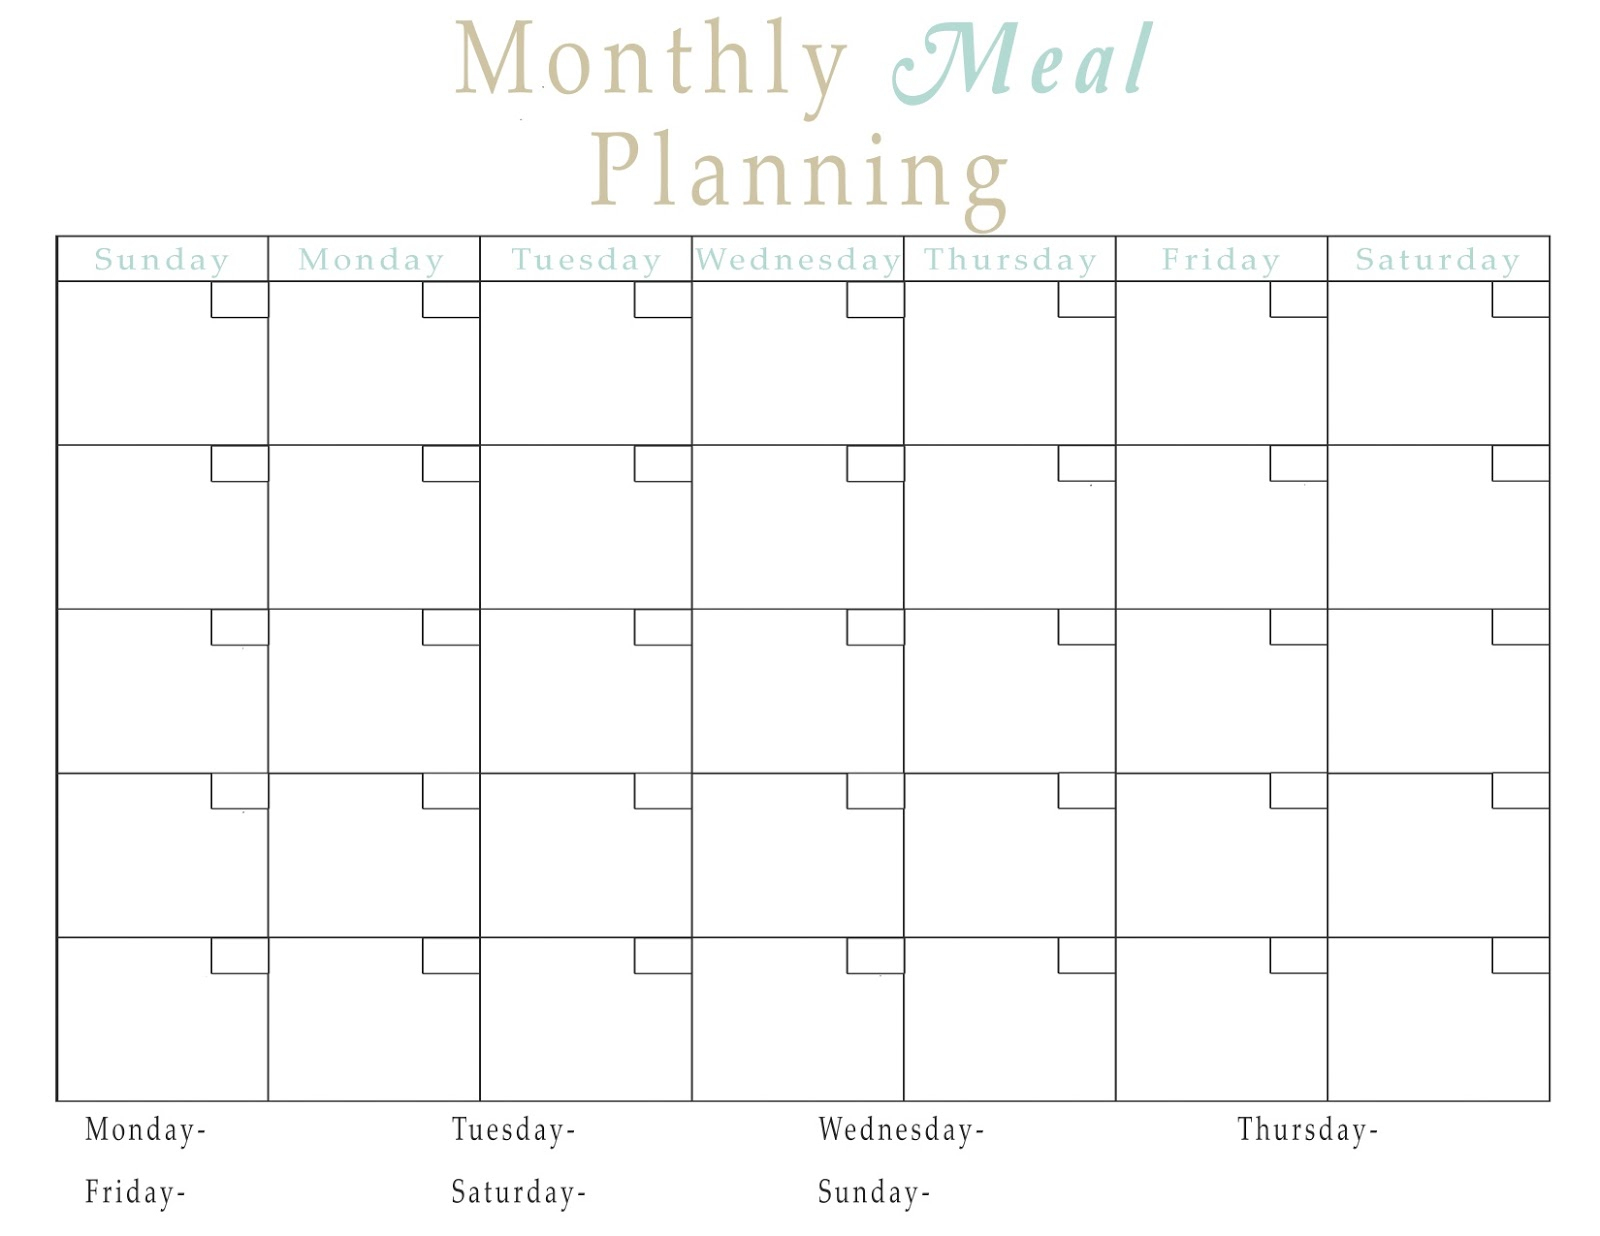 Easy Meal Plan Structure With Free Printables! - Fun Cheap Or Free within 1 Week Menu Calendar Template